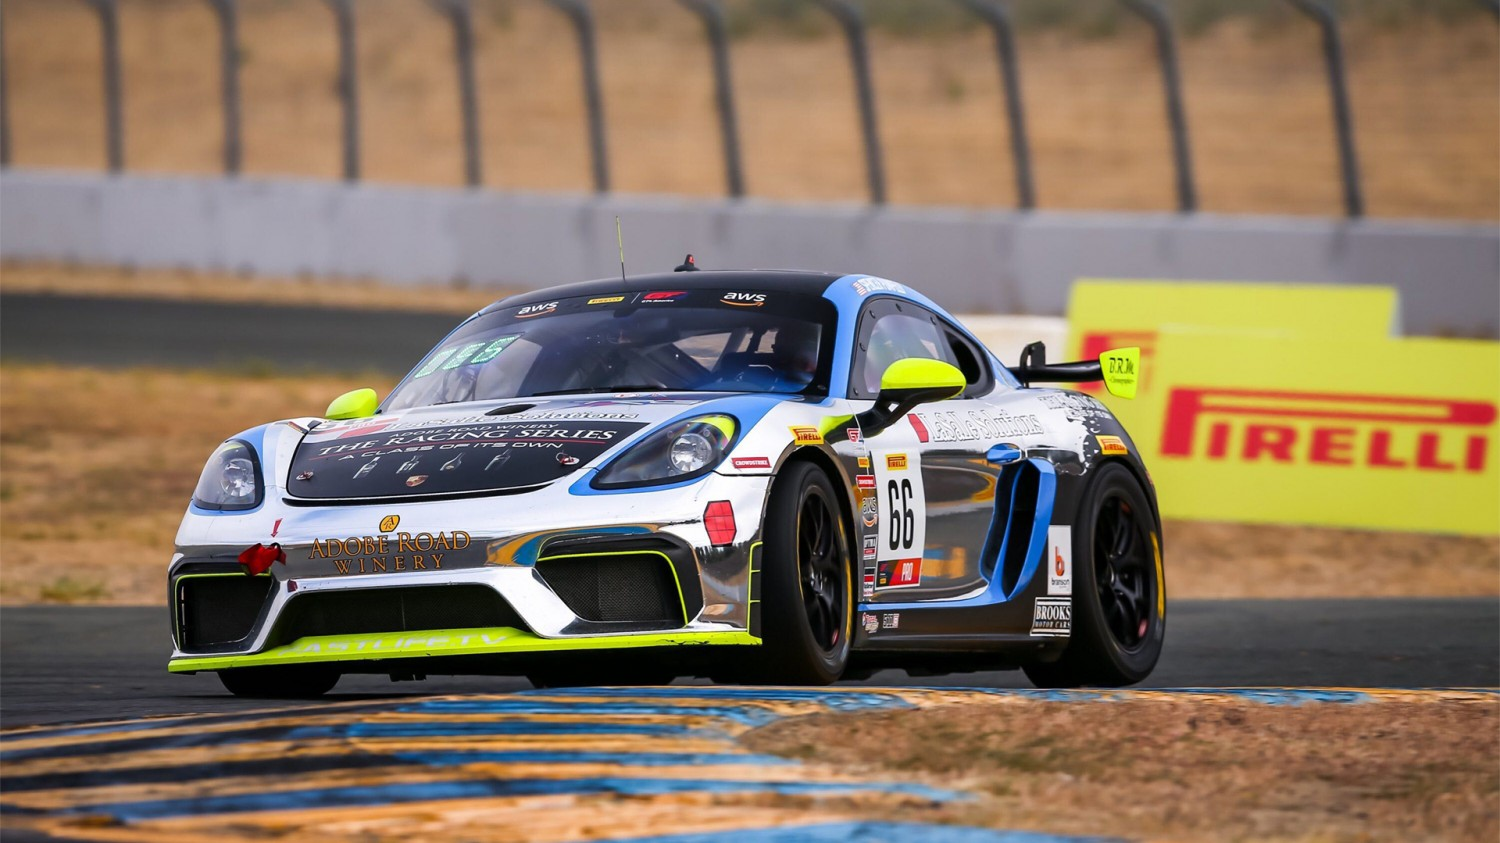 Pumpelly Flies To Pole For Pirelli GT4 America Sprint Race 1 At Sonoma Raceway